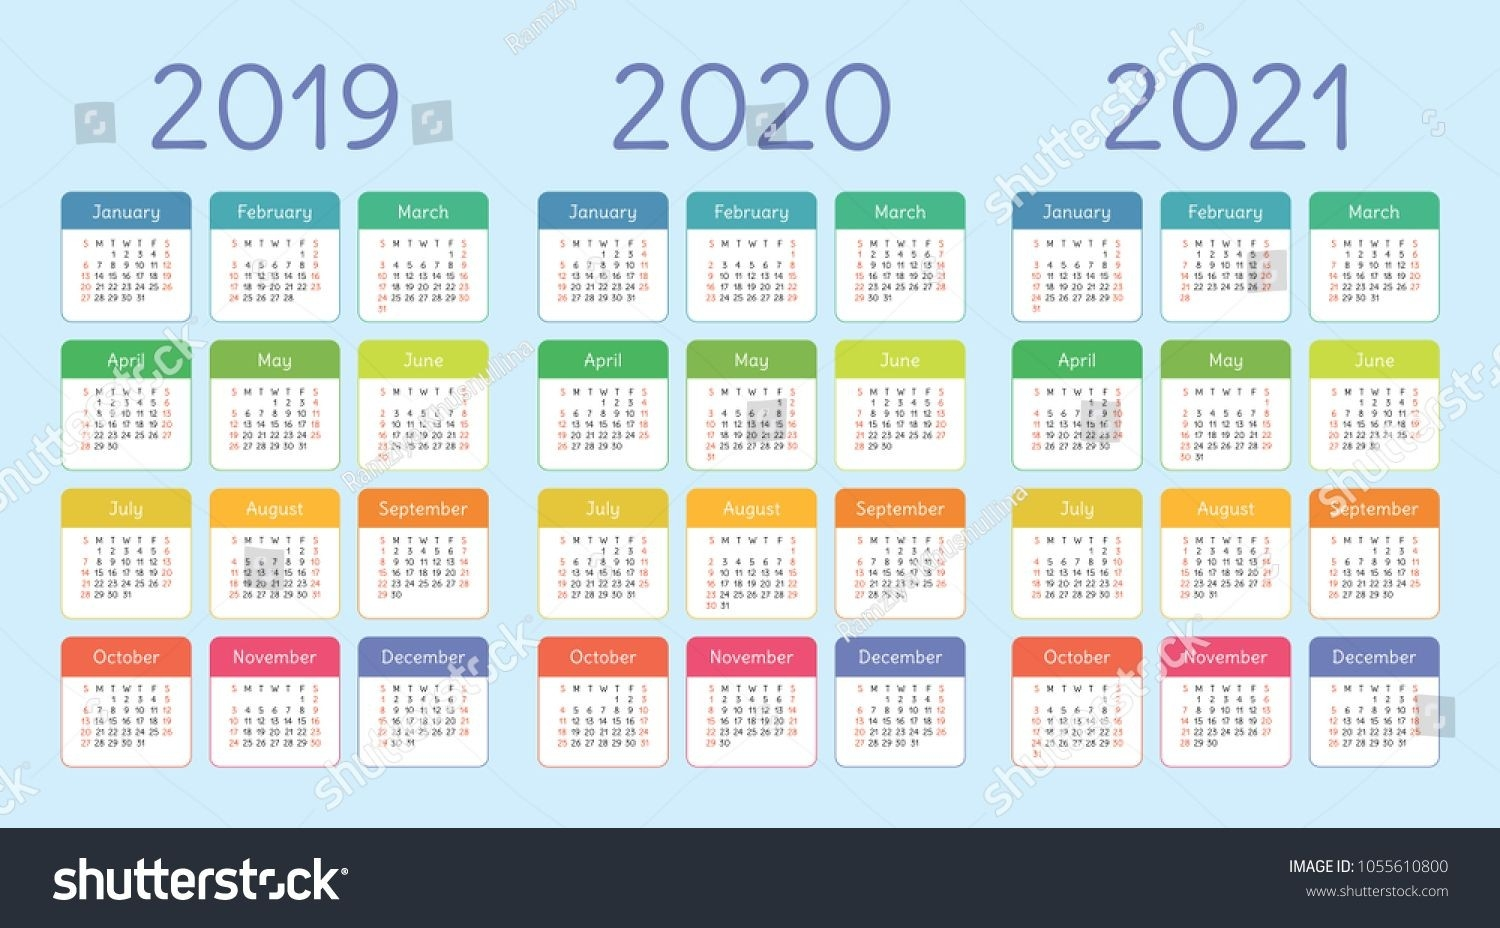 Colorful Calendar Set 2019, 2020 And 2021. Bright, Fun, Cute-Adobe Indesign Calendar Template 2020